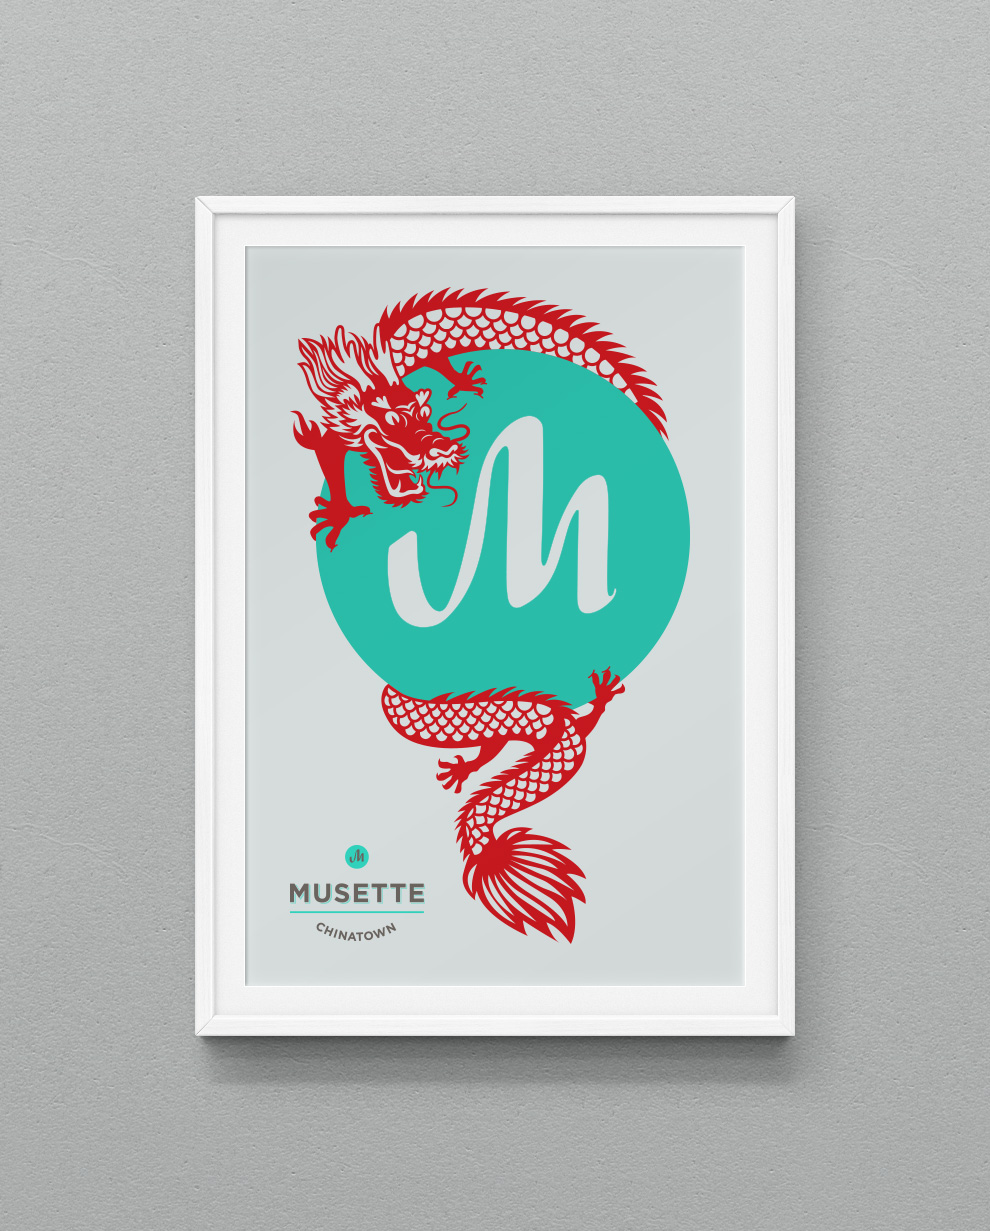 Musette Chinatown Poster – Jonathan Wood Design